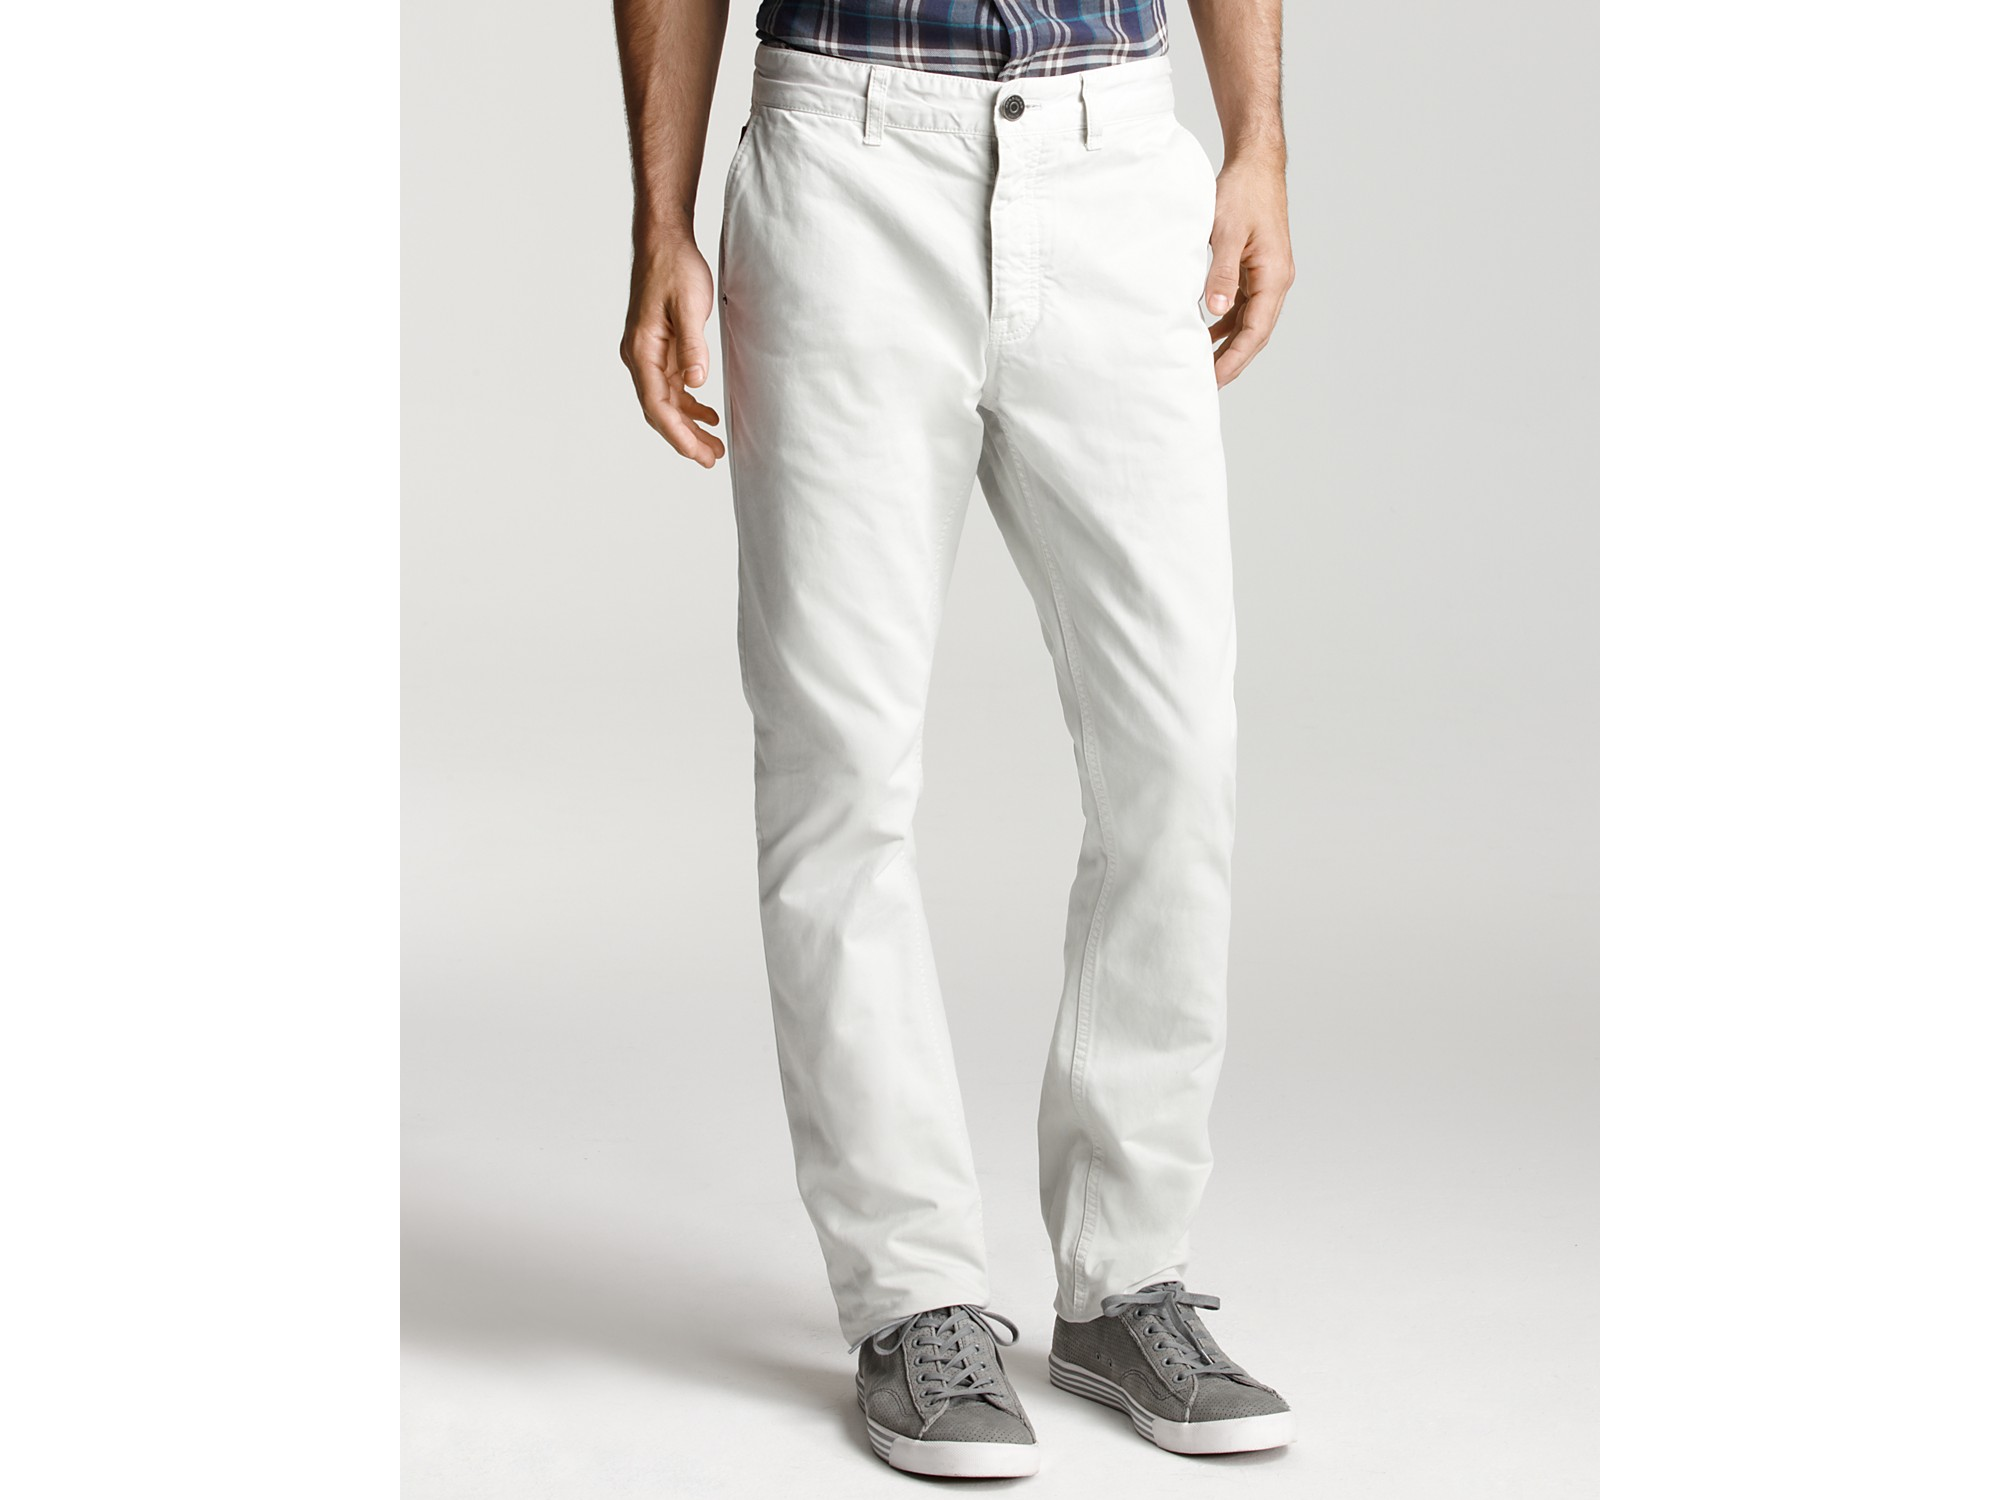 A true style staple in any man's wardrobe, chinos and pants are the go-to trouser for looking both chic and laidback. As one of the most versatile men's pants, chinos can be worn in a number of different ways depending on the occasion.